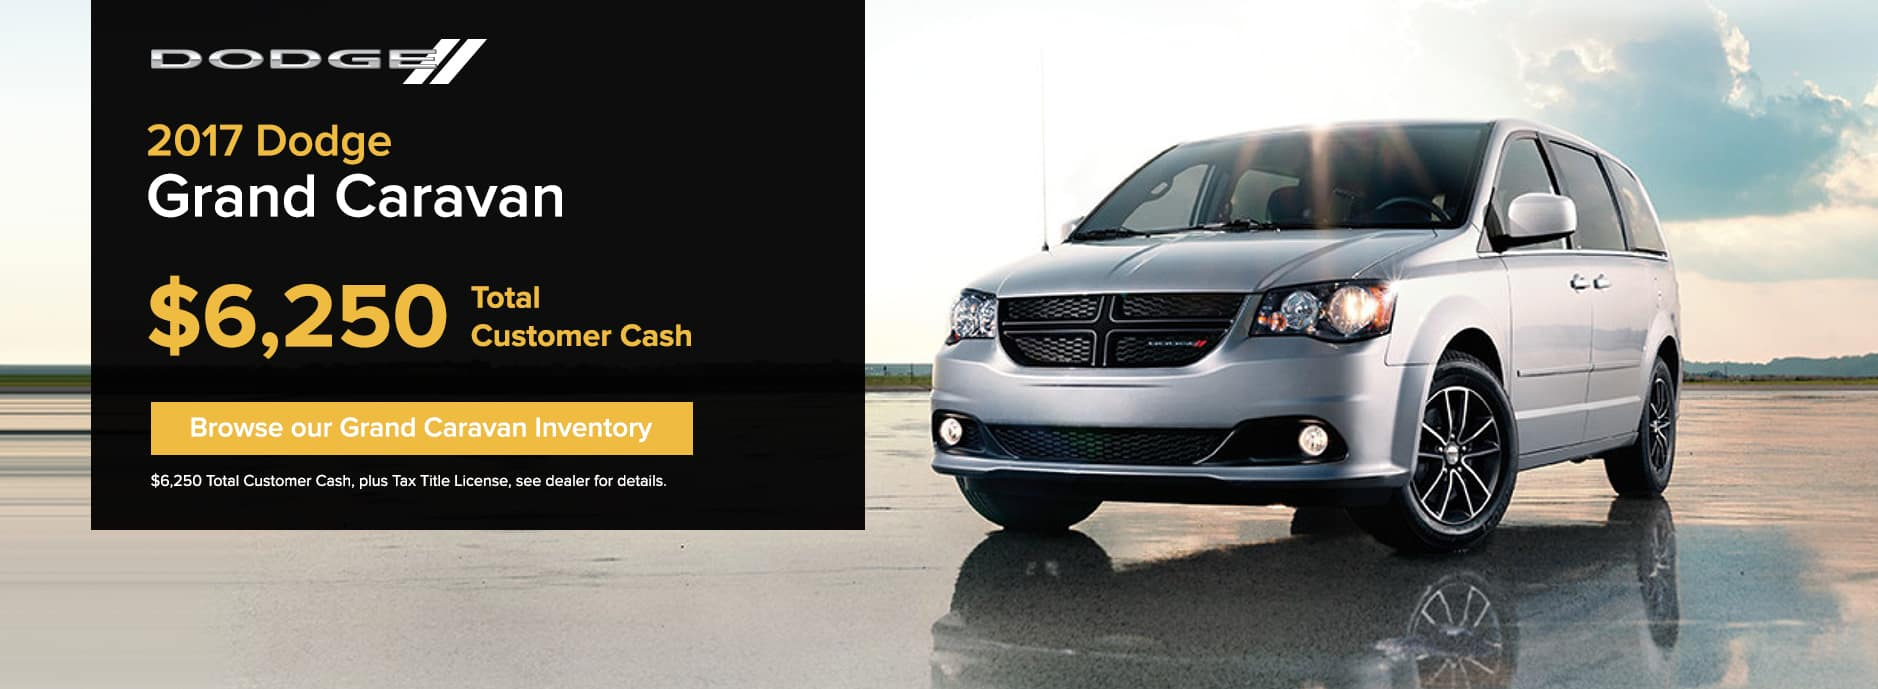 Dodge Grand Caravan November Offer Zeigler CDJ